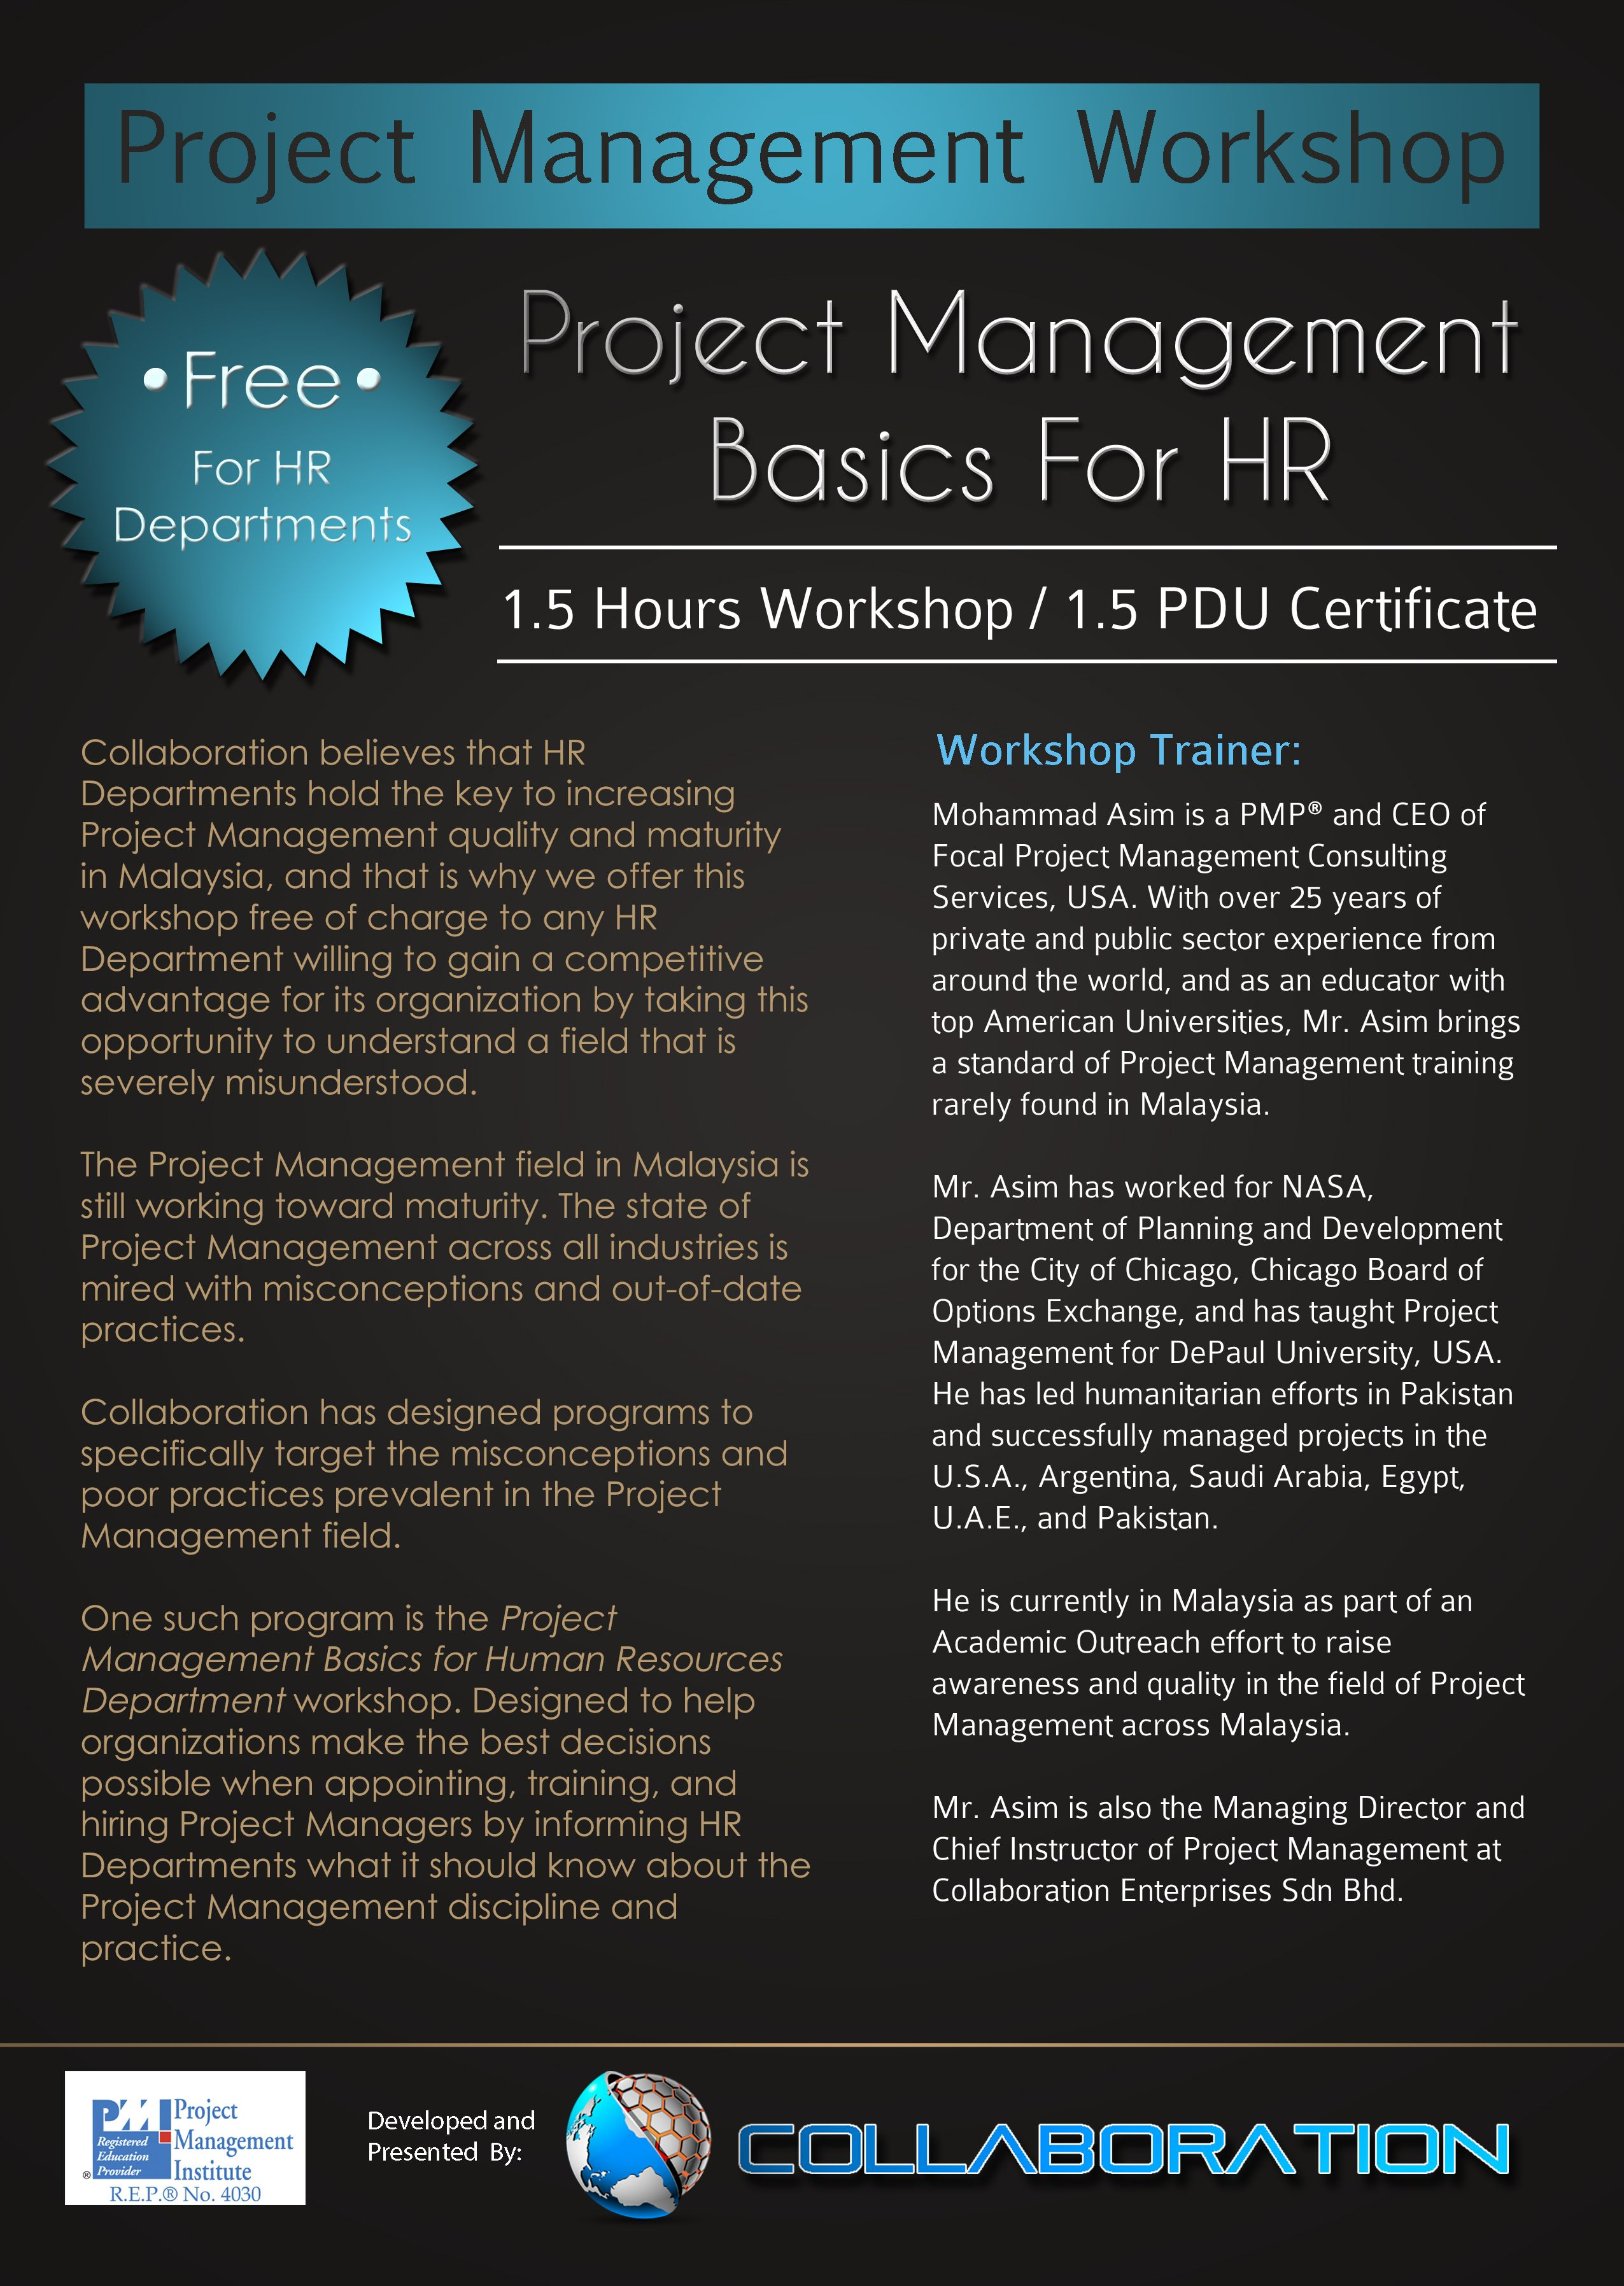 It Is Extremely Important That Hr Departments Understand The Basics